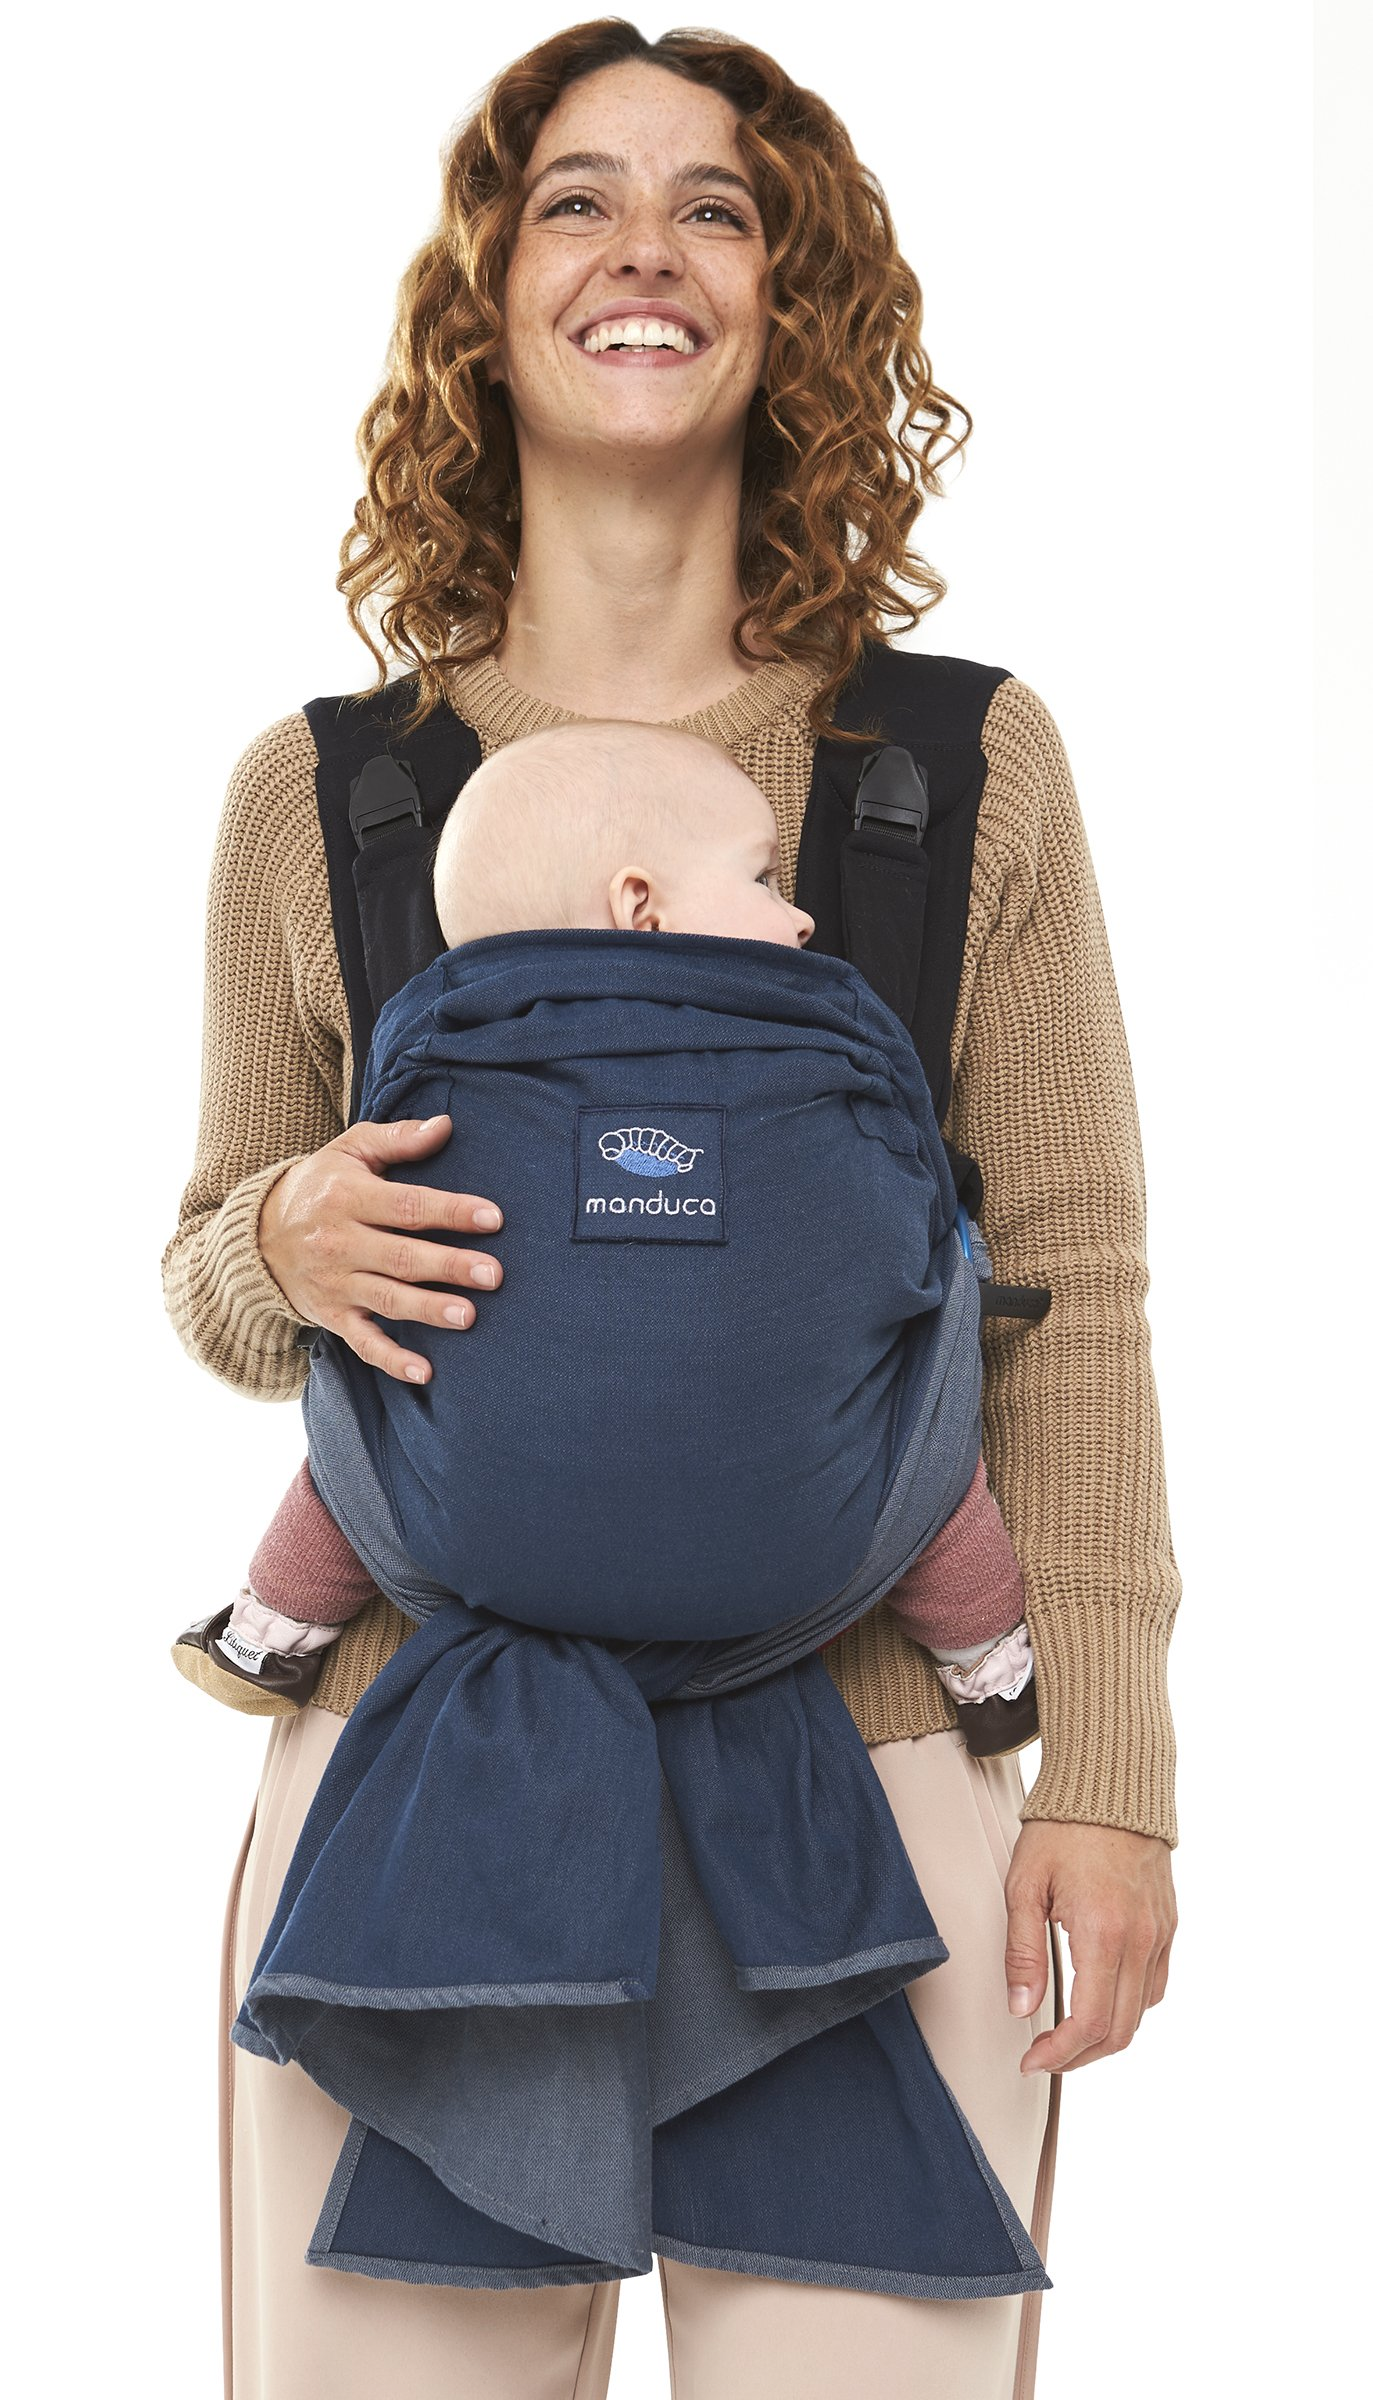 manduca Duo - Hybrid of Baby Carrier and Sling, Innovative Click &Tie System, Baby Slip-Through-Protection, Removable Hip Belt, Organic Cotton and Mesh, from Birth to 15kg (Blue) Manduca Optimized as front carrier, with slip-through protection (secure fit for your baby), supports the M position, for newborns from birth to infants up to 15 kg Especially popular with first-time parents who find it difficult to choose between a sling and a comfort carrier with buckles. Easy to use, illustrated instructions Detachable hip belt, which is only zipped on when needed (up to 140cm circumference without belt extension). Ideal for mothers with sensitive belly and after cesarean section, good weight distribution, comfortable on the shoulders. 1